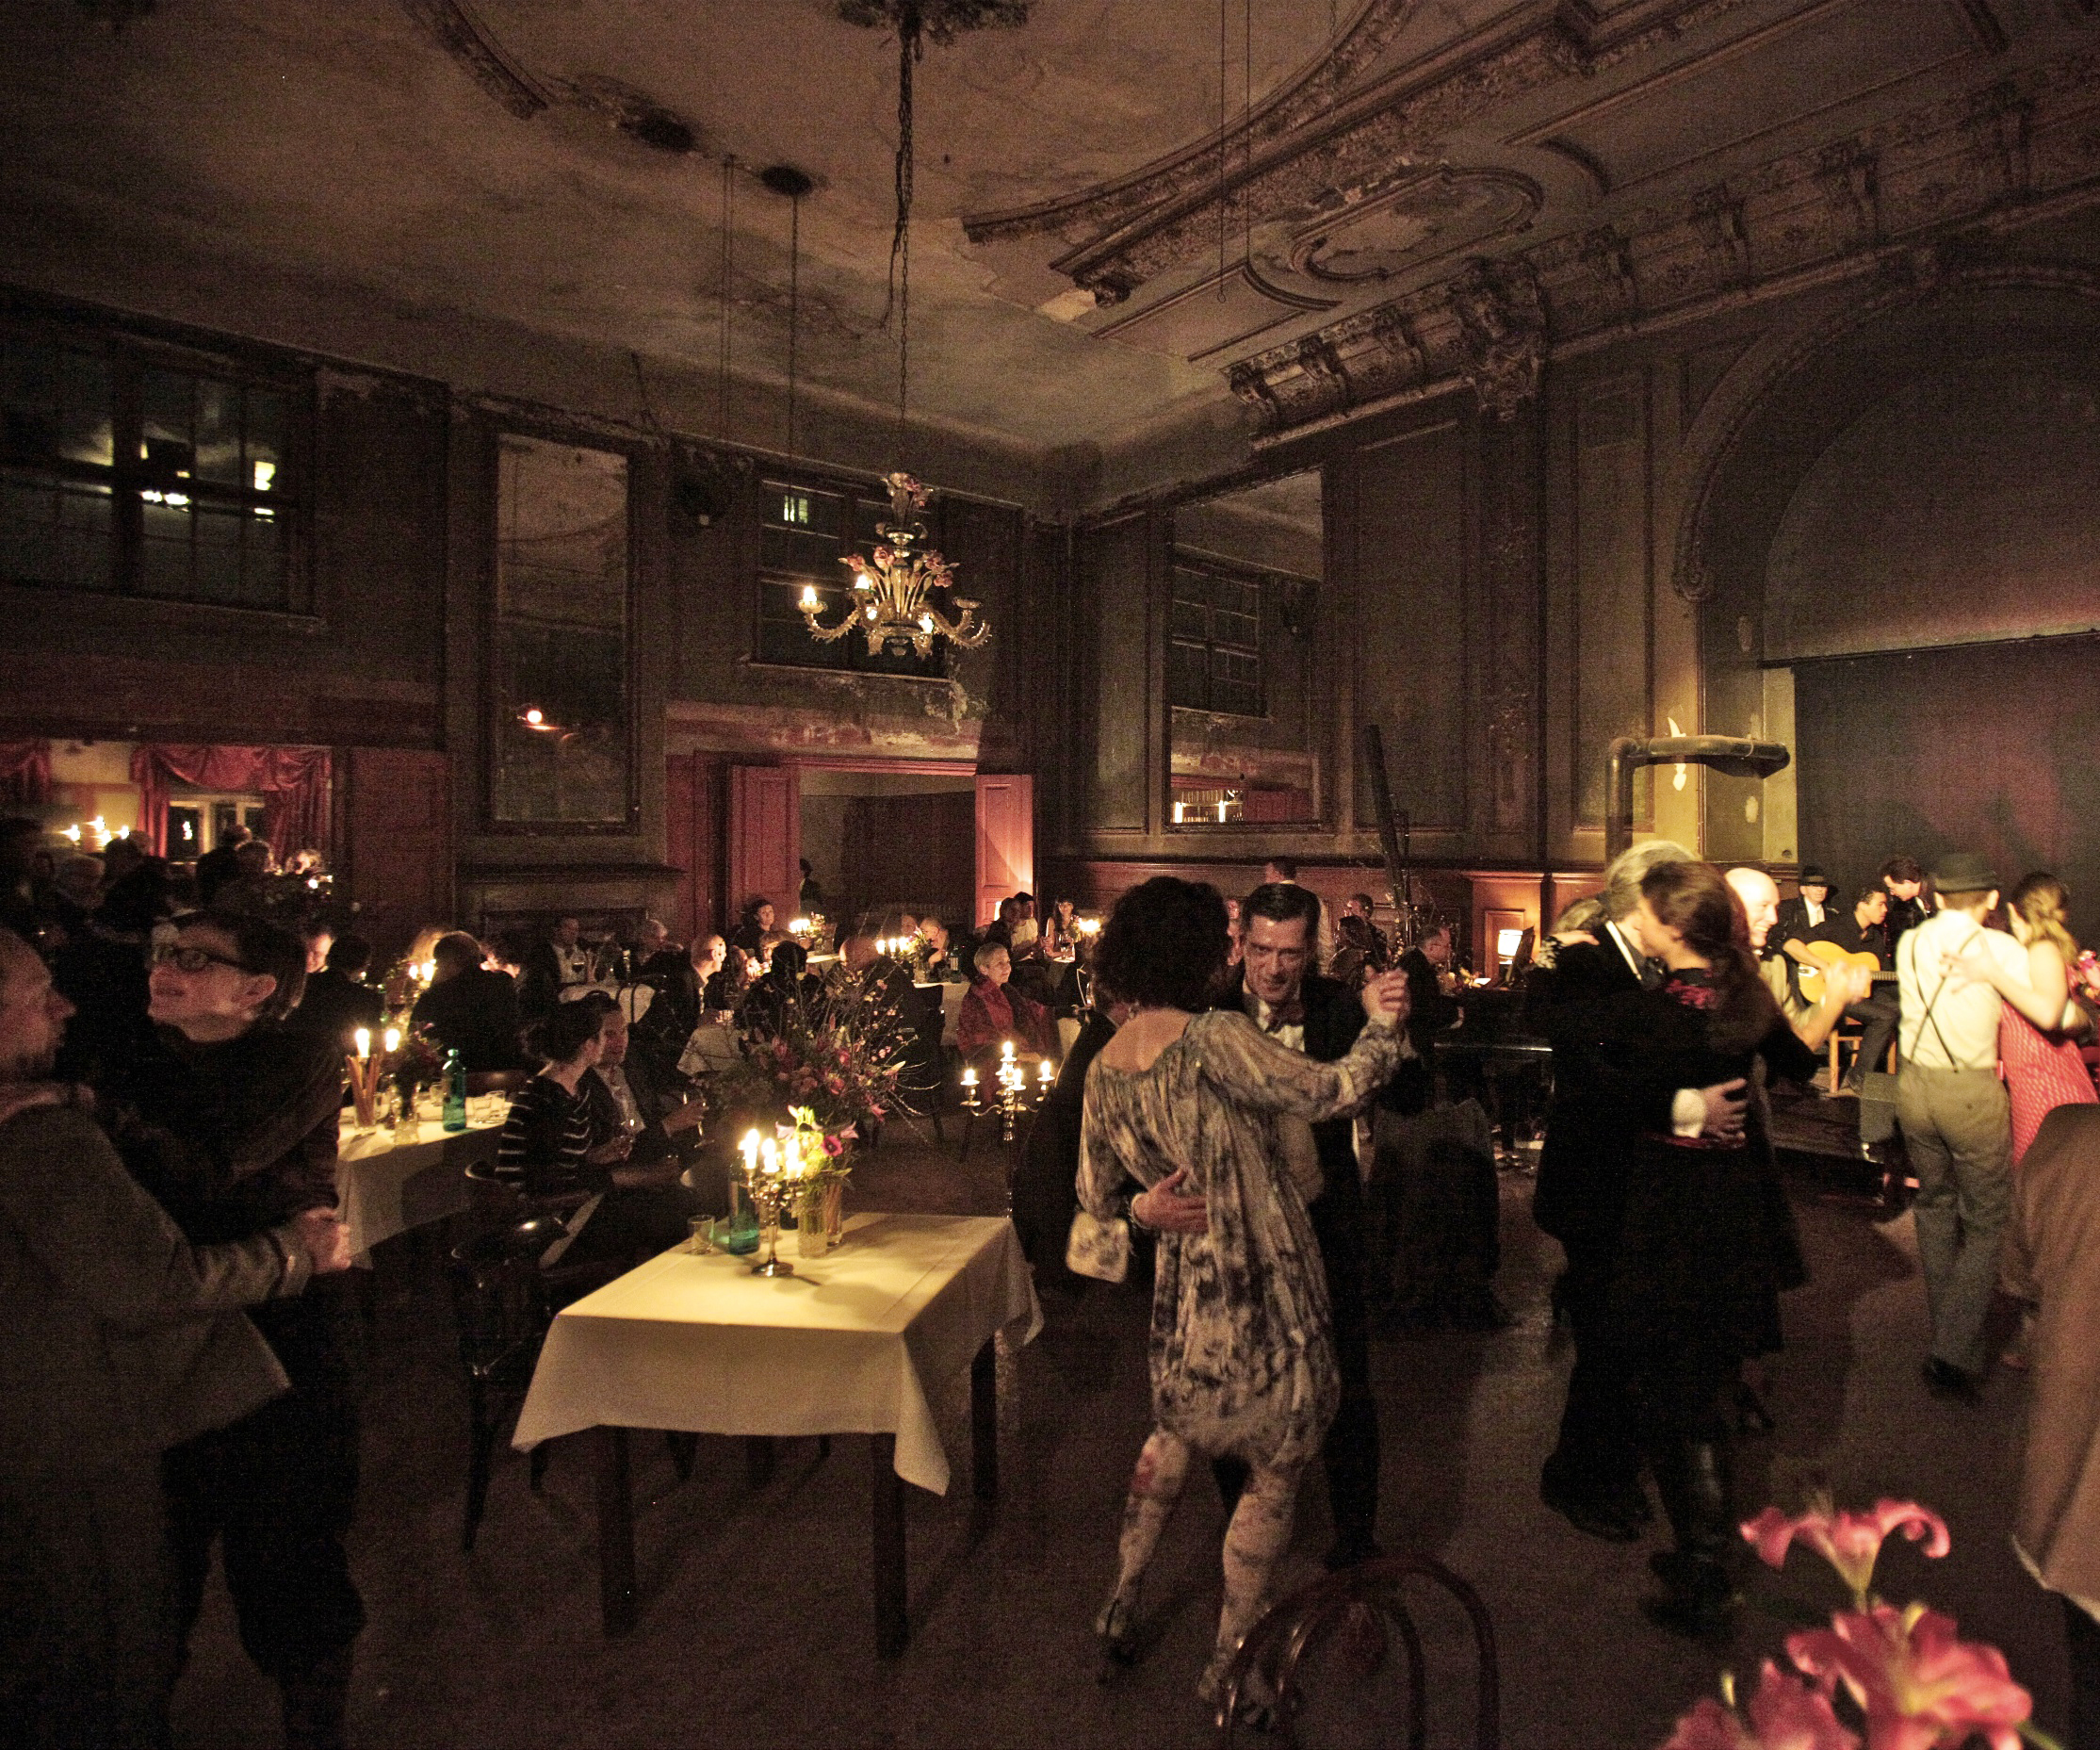 The mirror room at Clärchen's Ballhaus, one of MYKITA's recommended places to go dancing